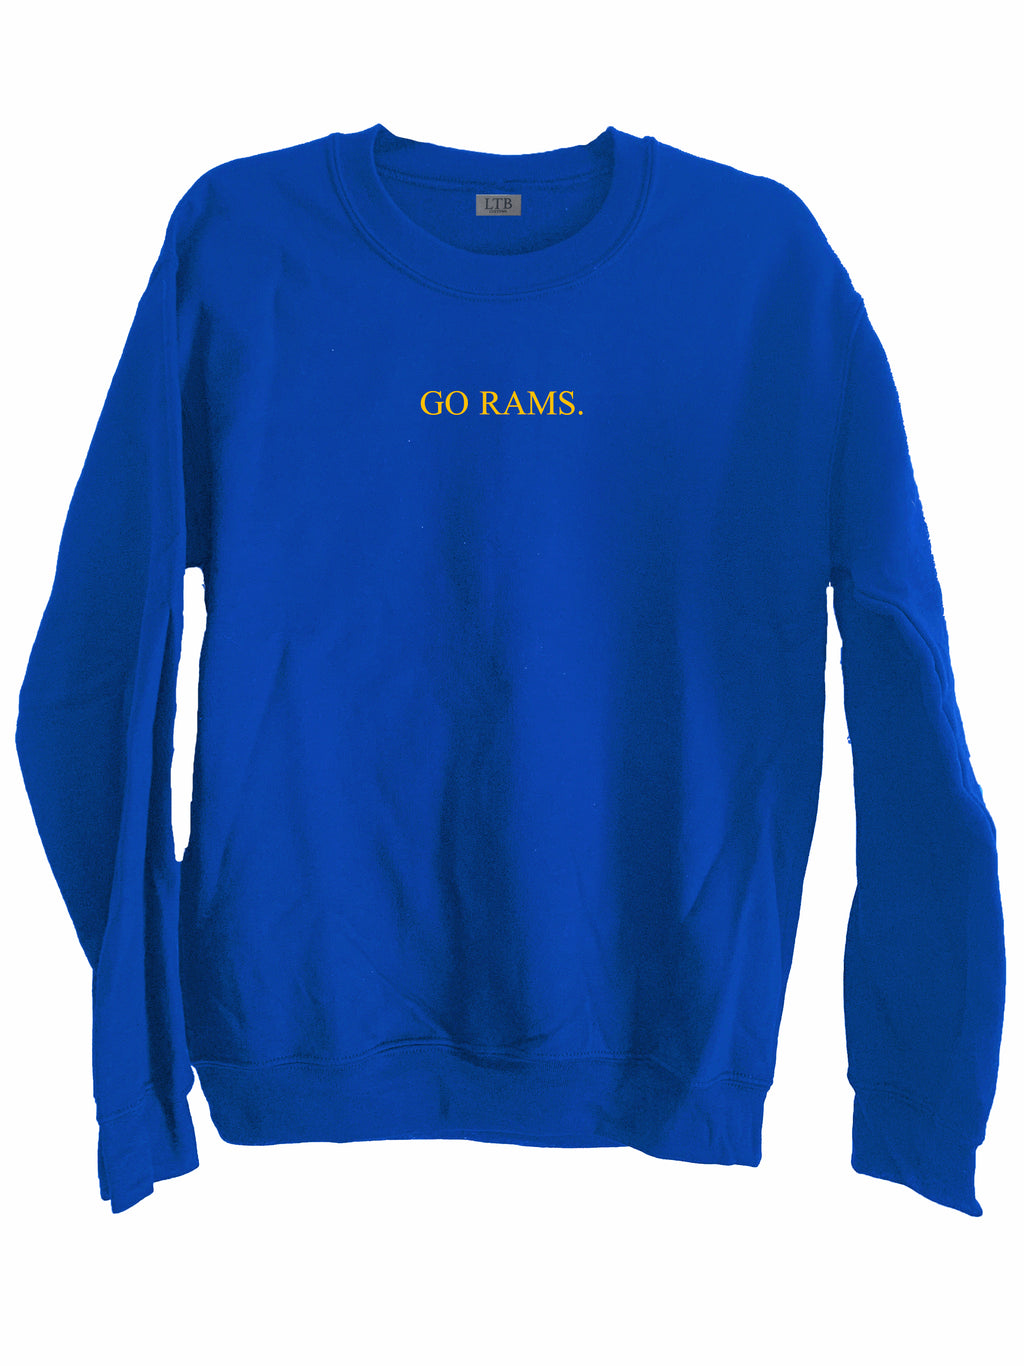 [LTB Customs] Go Rams Crewneck Sweatshirt